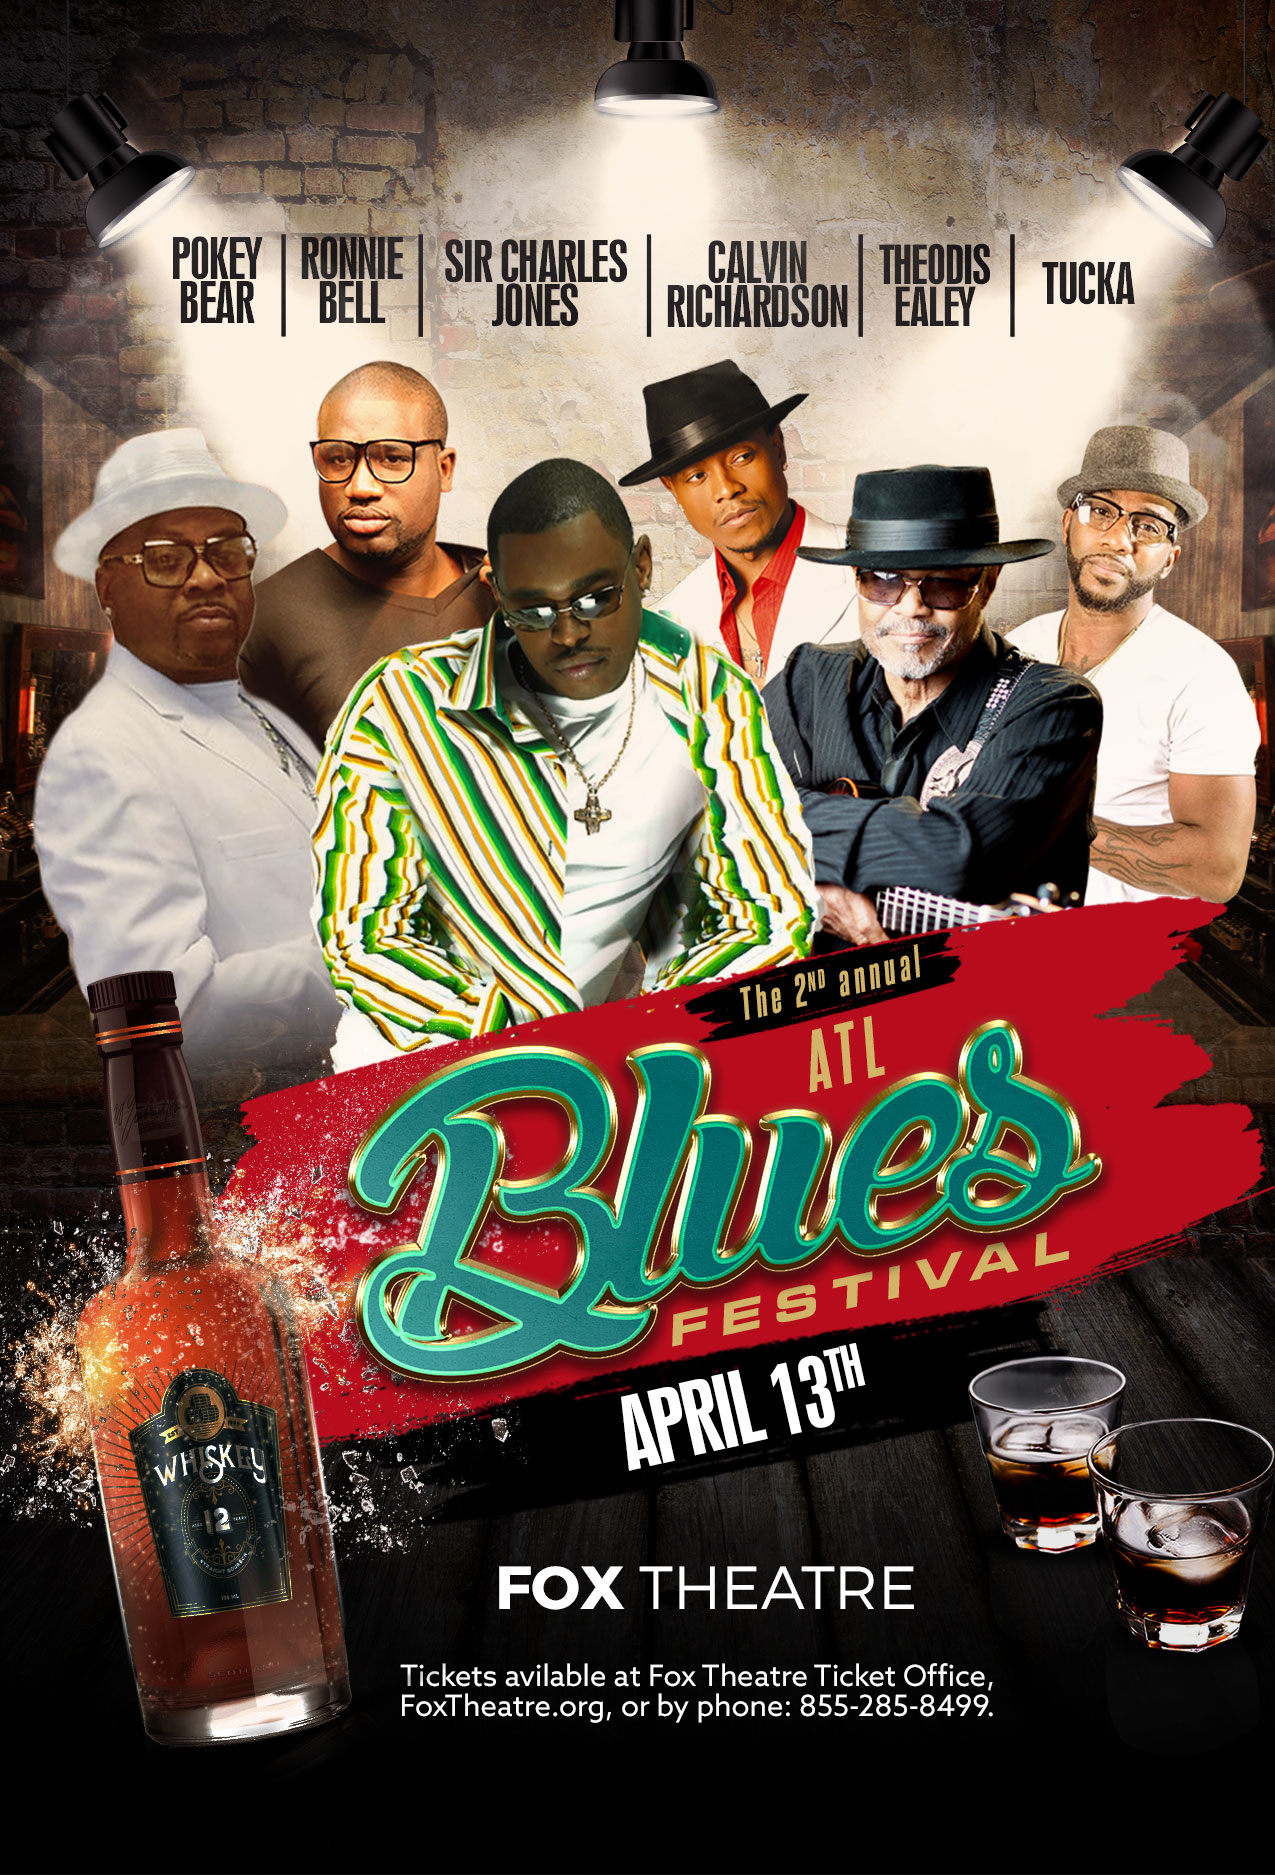 2nd Annual Atlanta Blues Festival